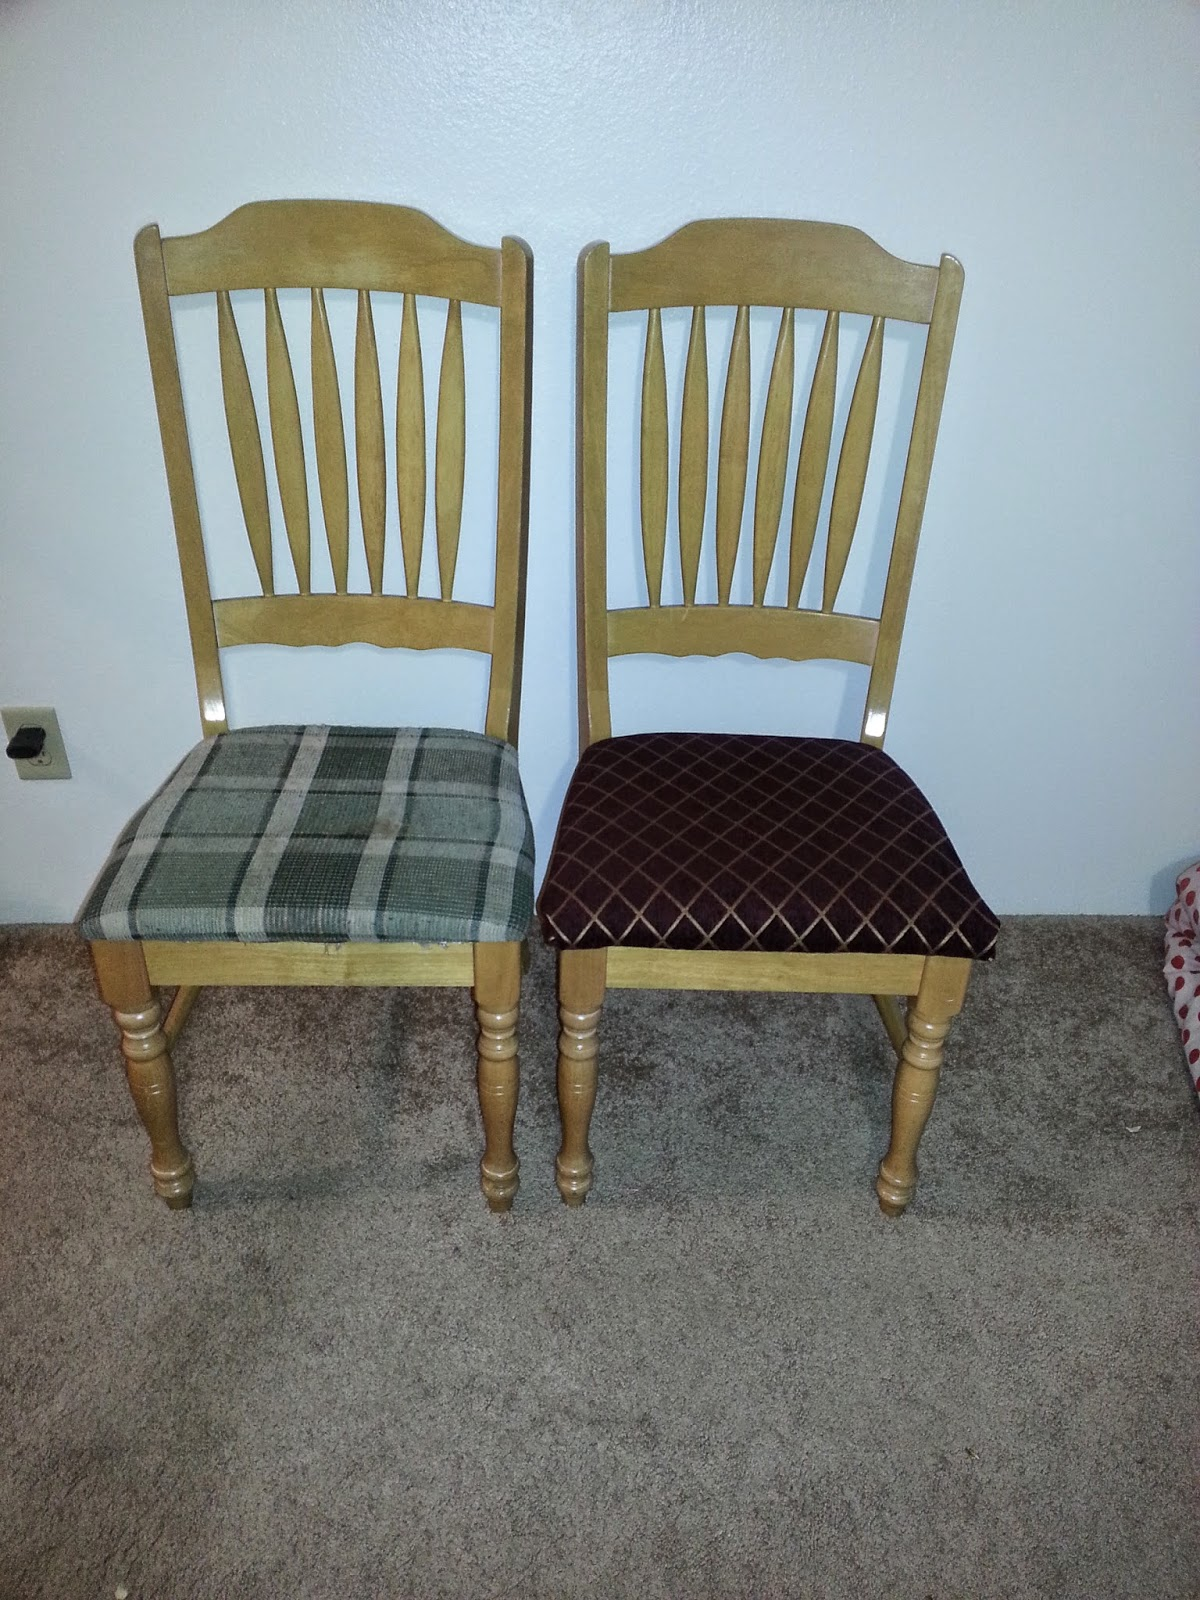 how to upholter a chair, do it yourself easy project, home decor, furniture renovation, spend less gain more